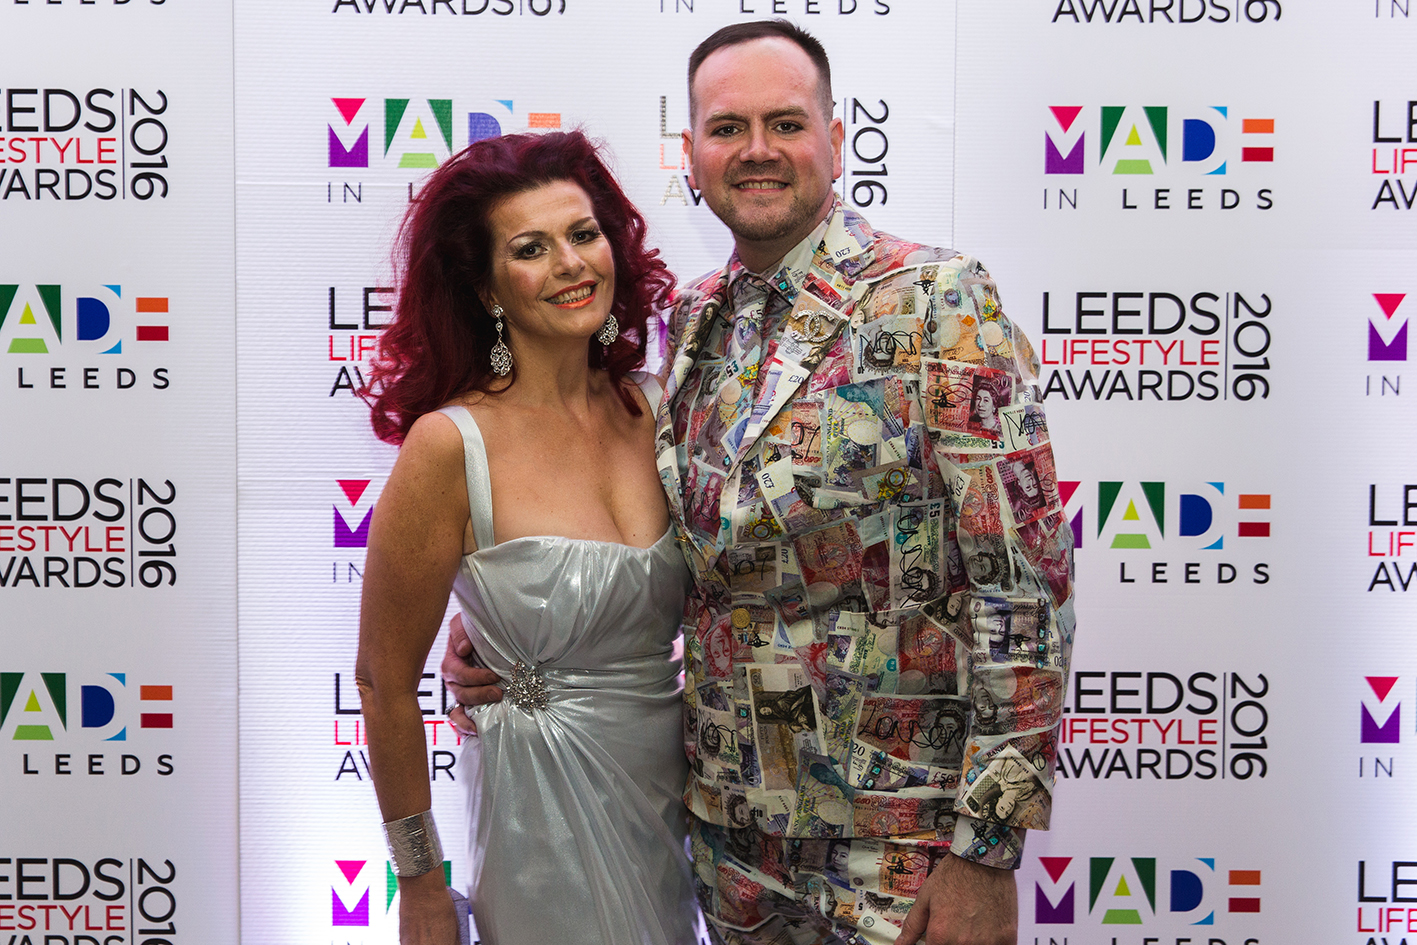 leeds-lifestyle-awards-2016-photos-by-pure-aperture-24-small